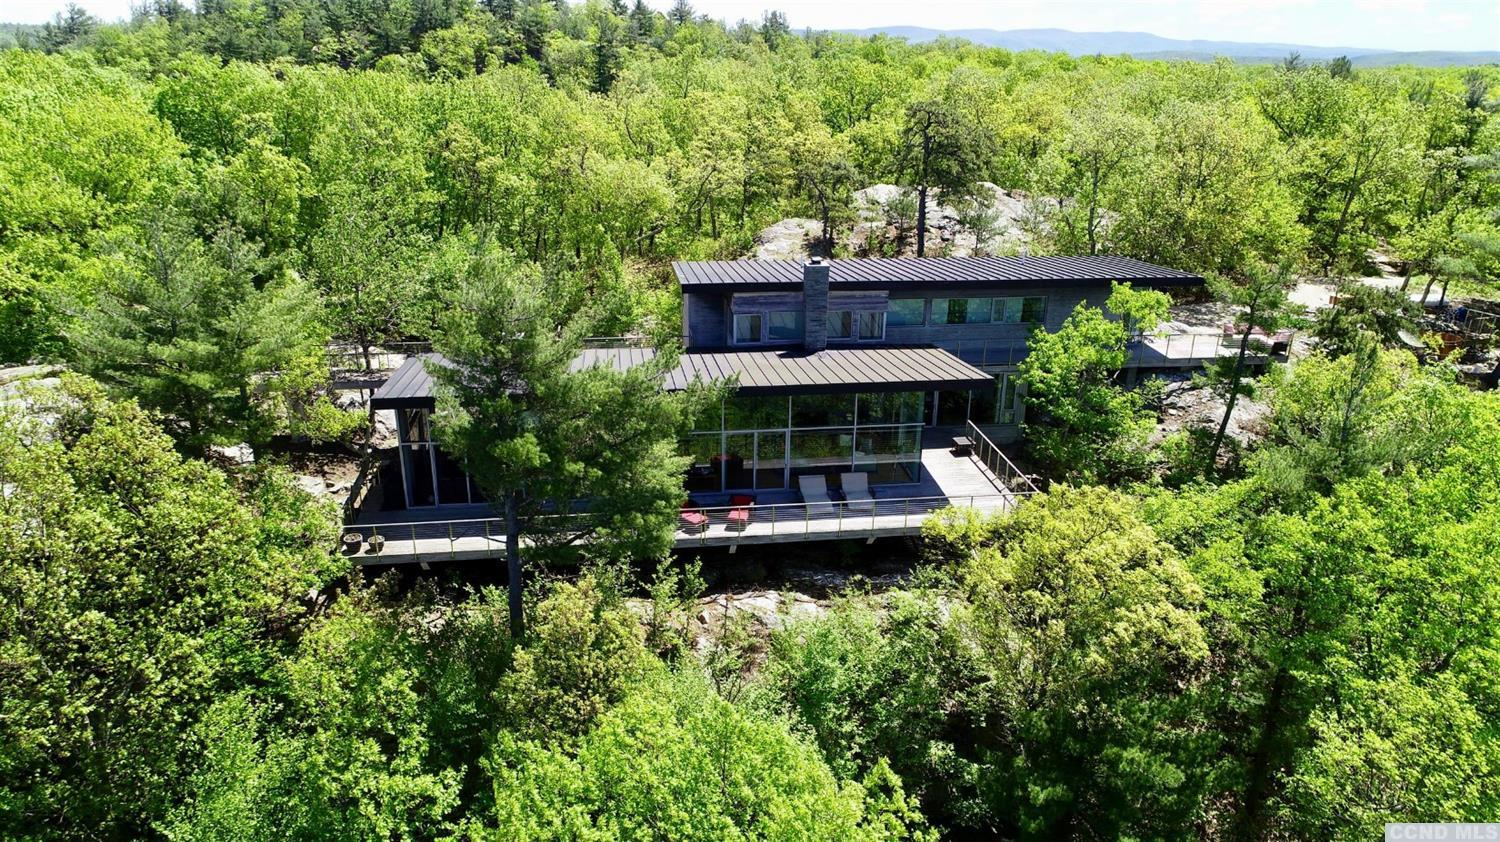 Listing courtesy of Heather Croner Real Estate Sotheby's International Realty